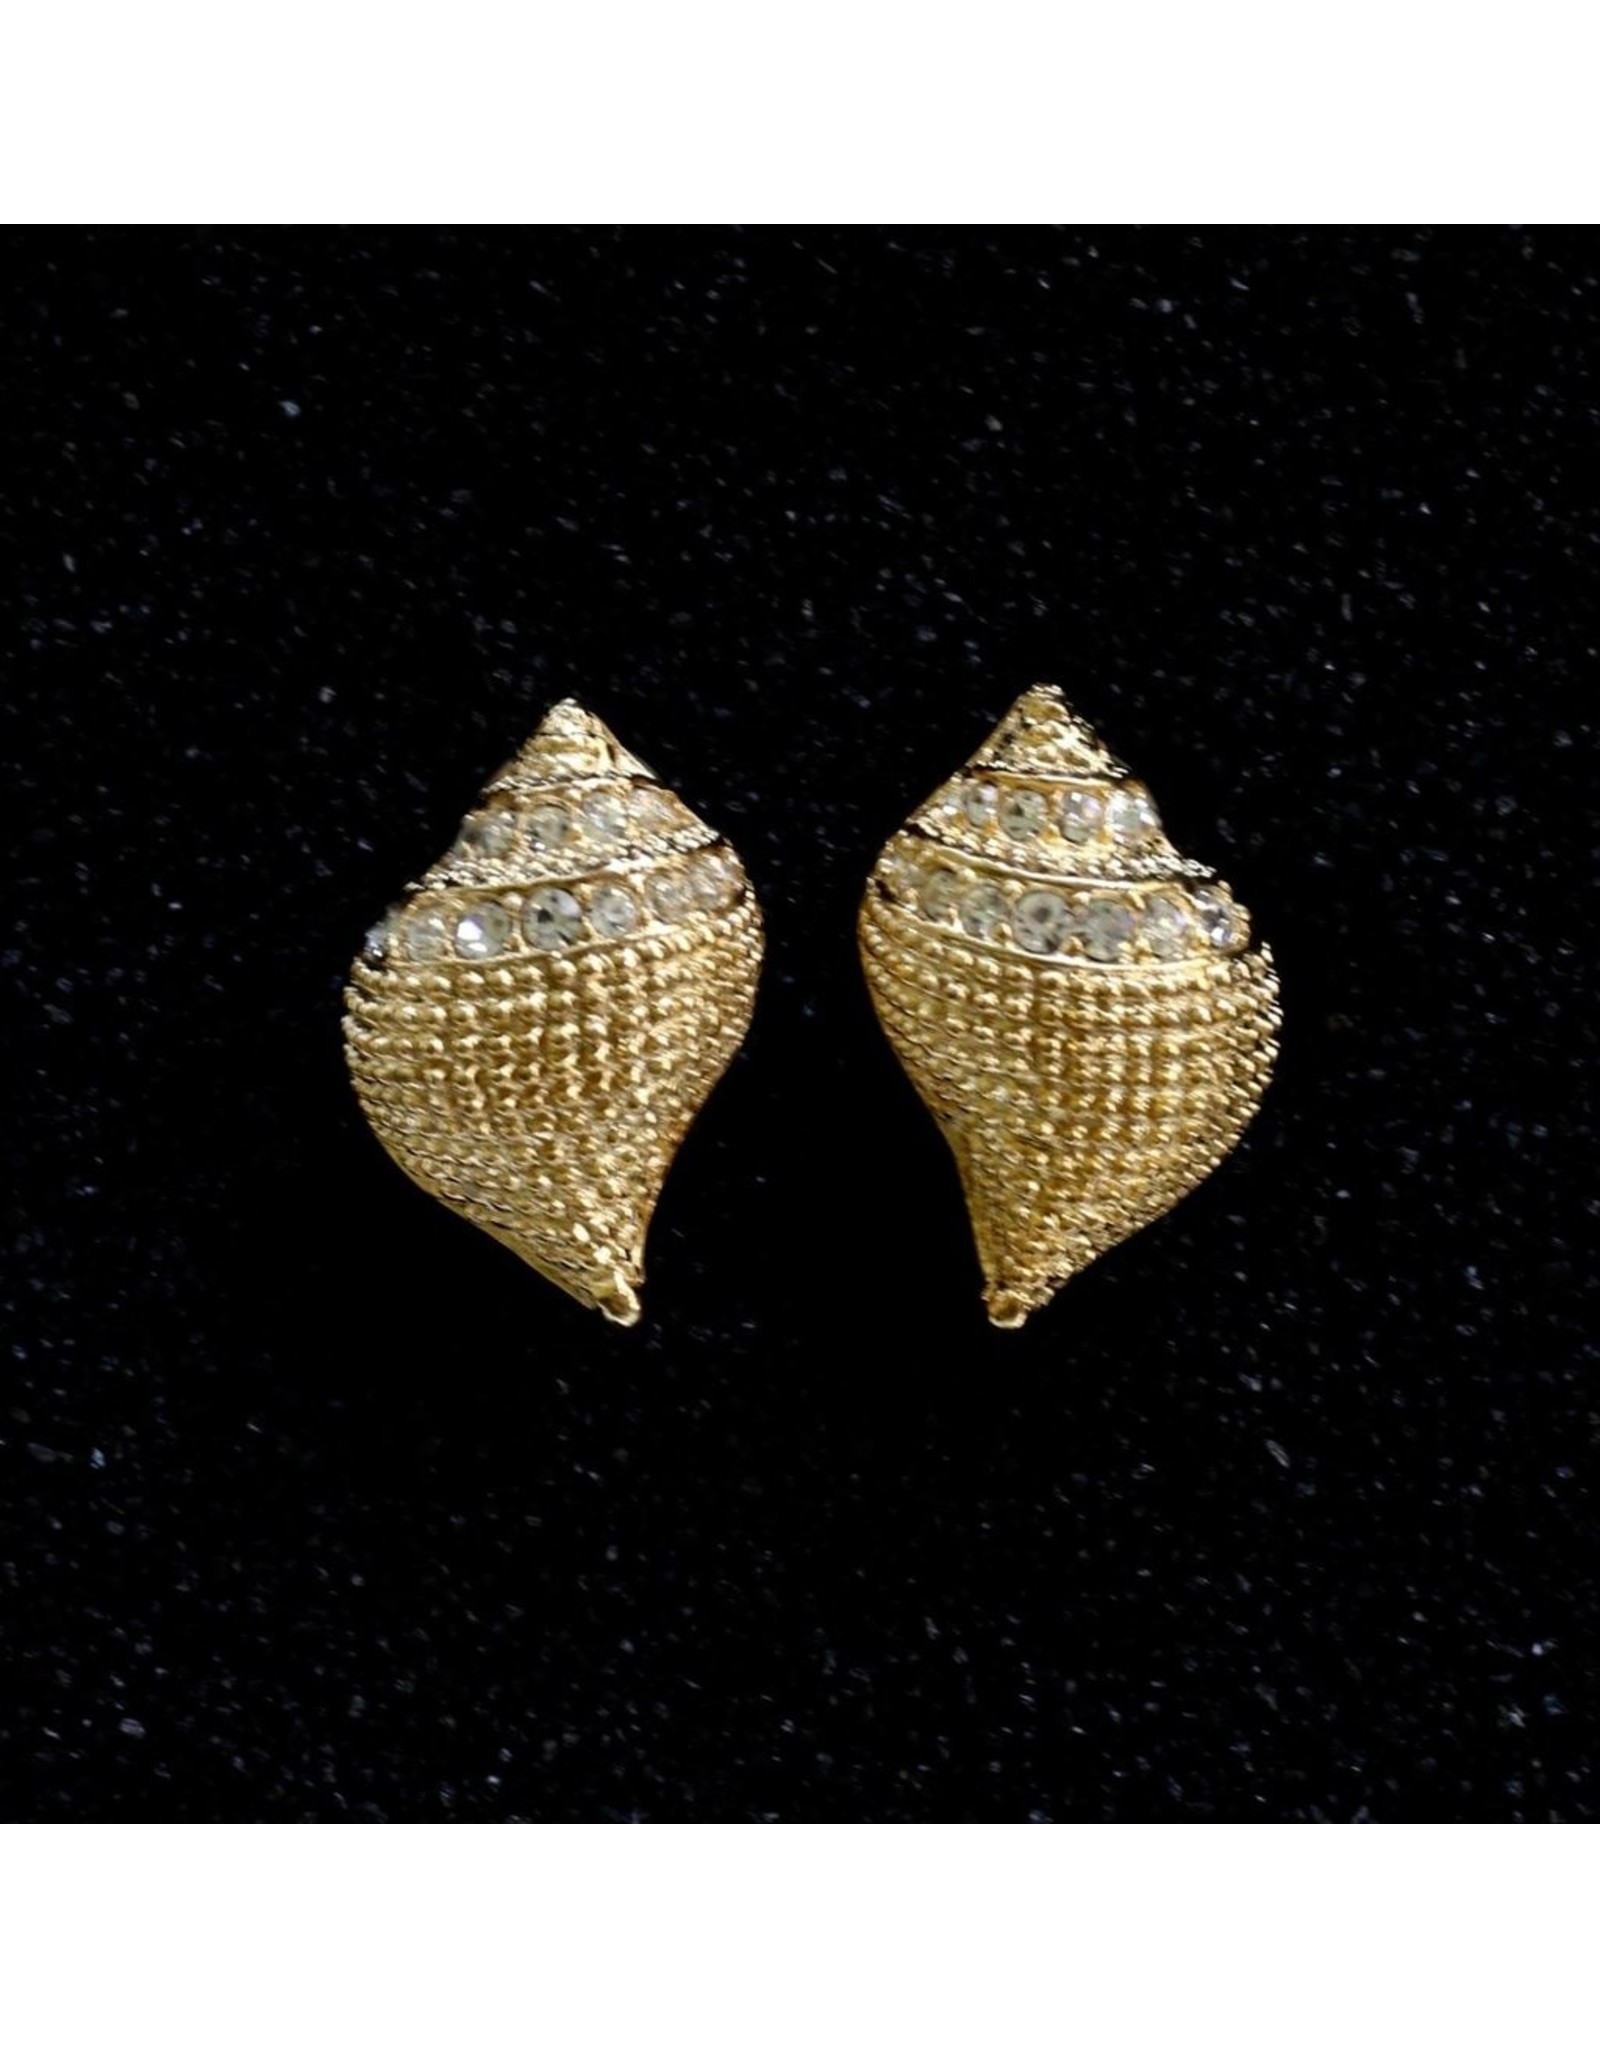 Kenneth Jay Lane KJLane: Conch with CZ's